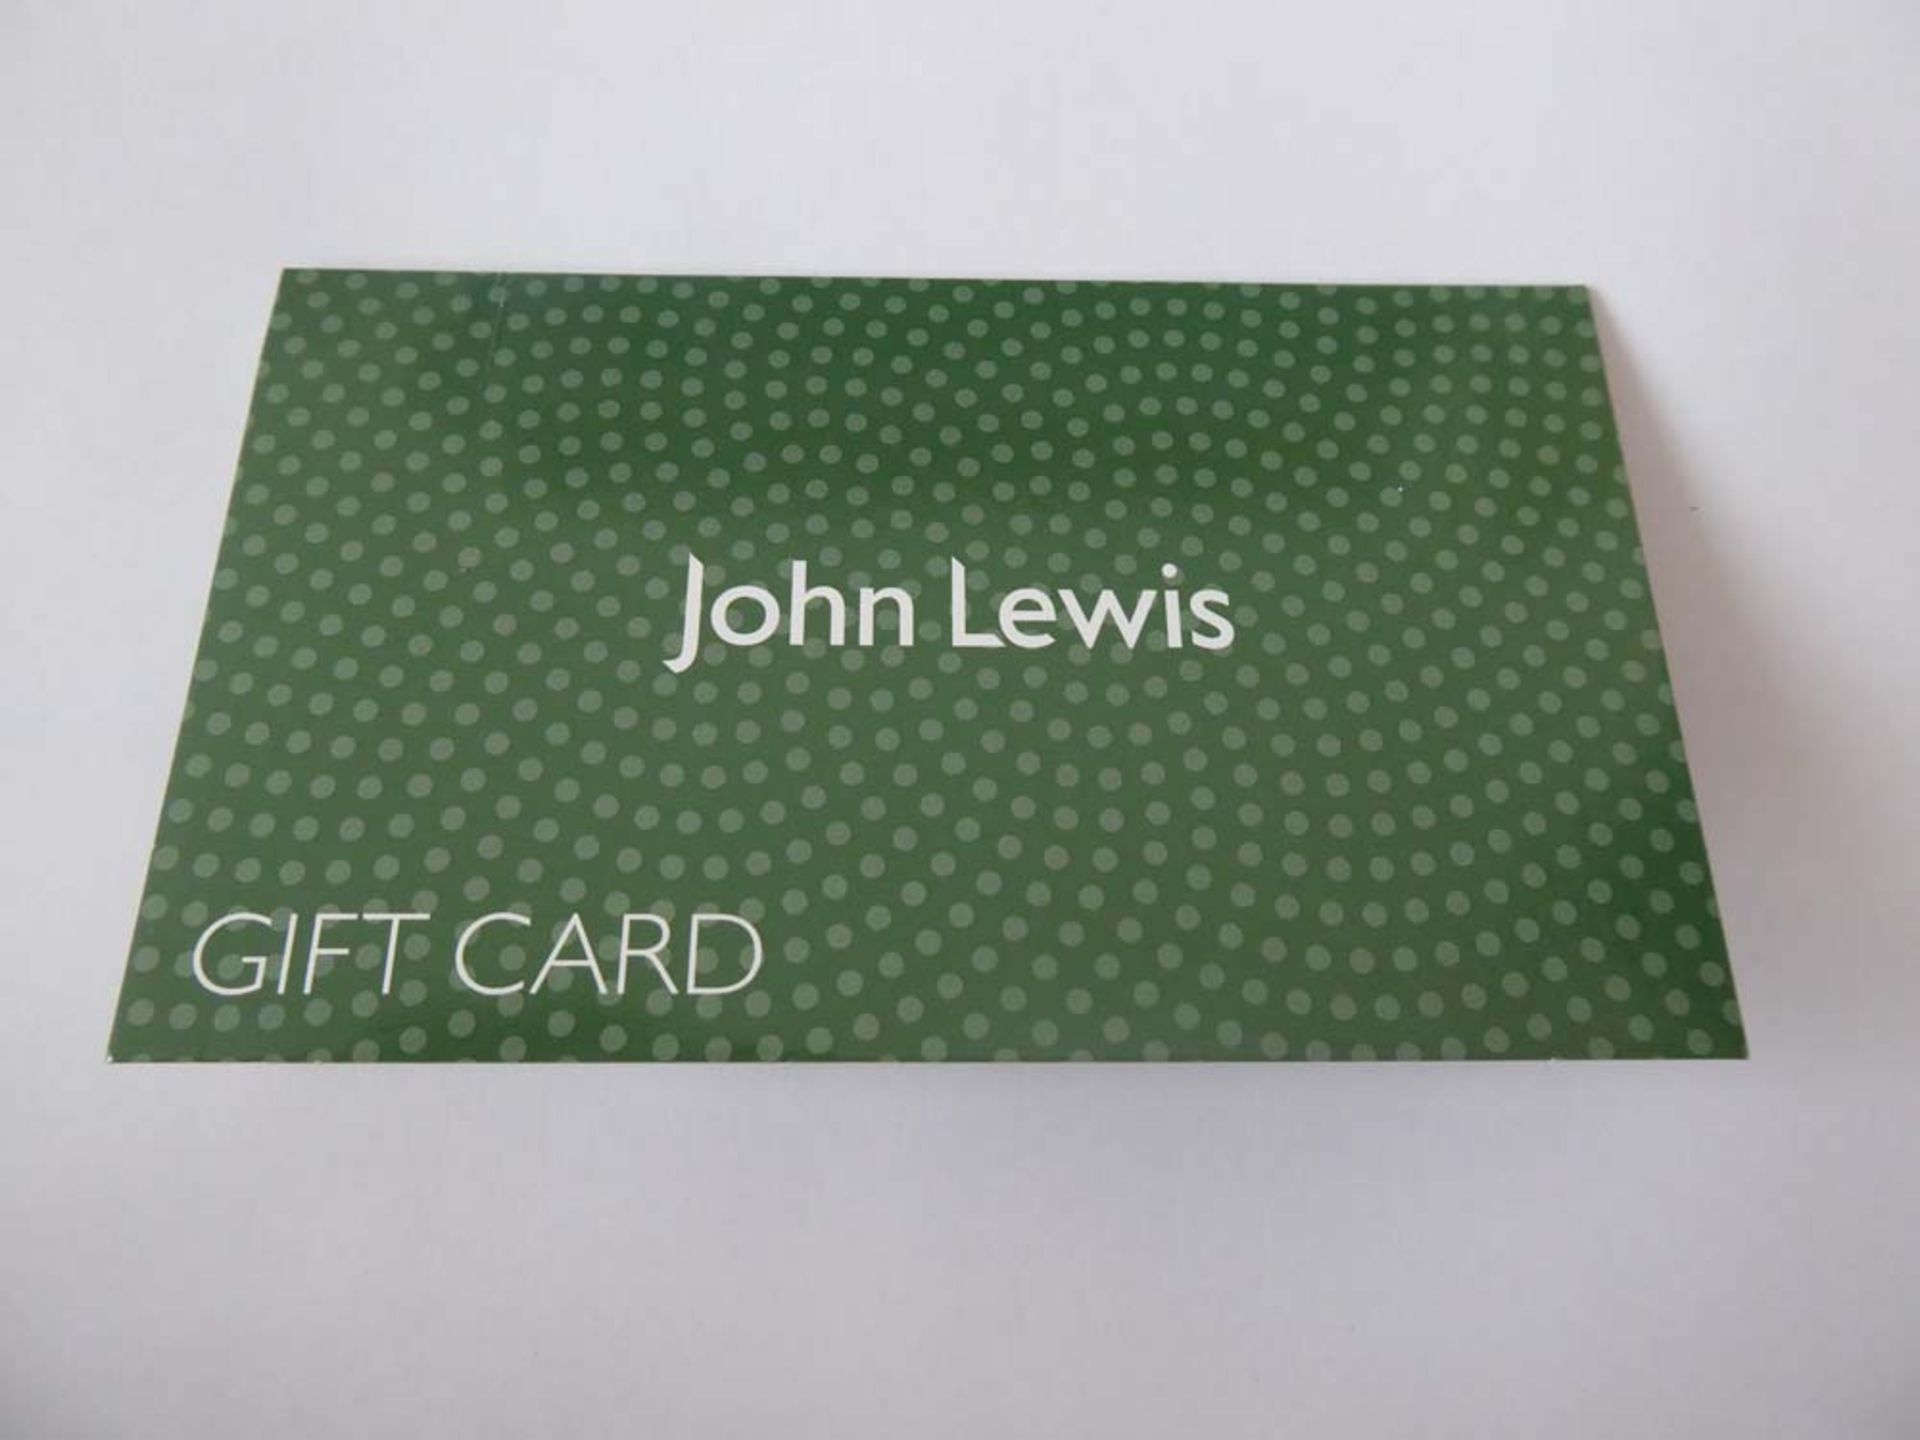 John Lewis (x2) - Total face value £750 - Image 2 of 2